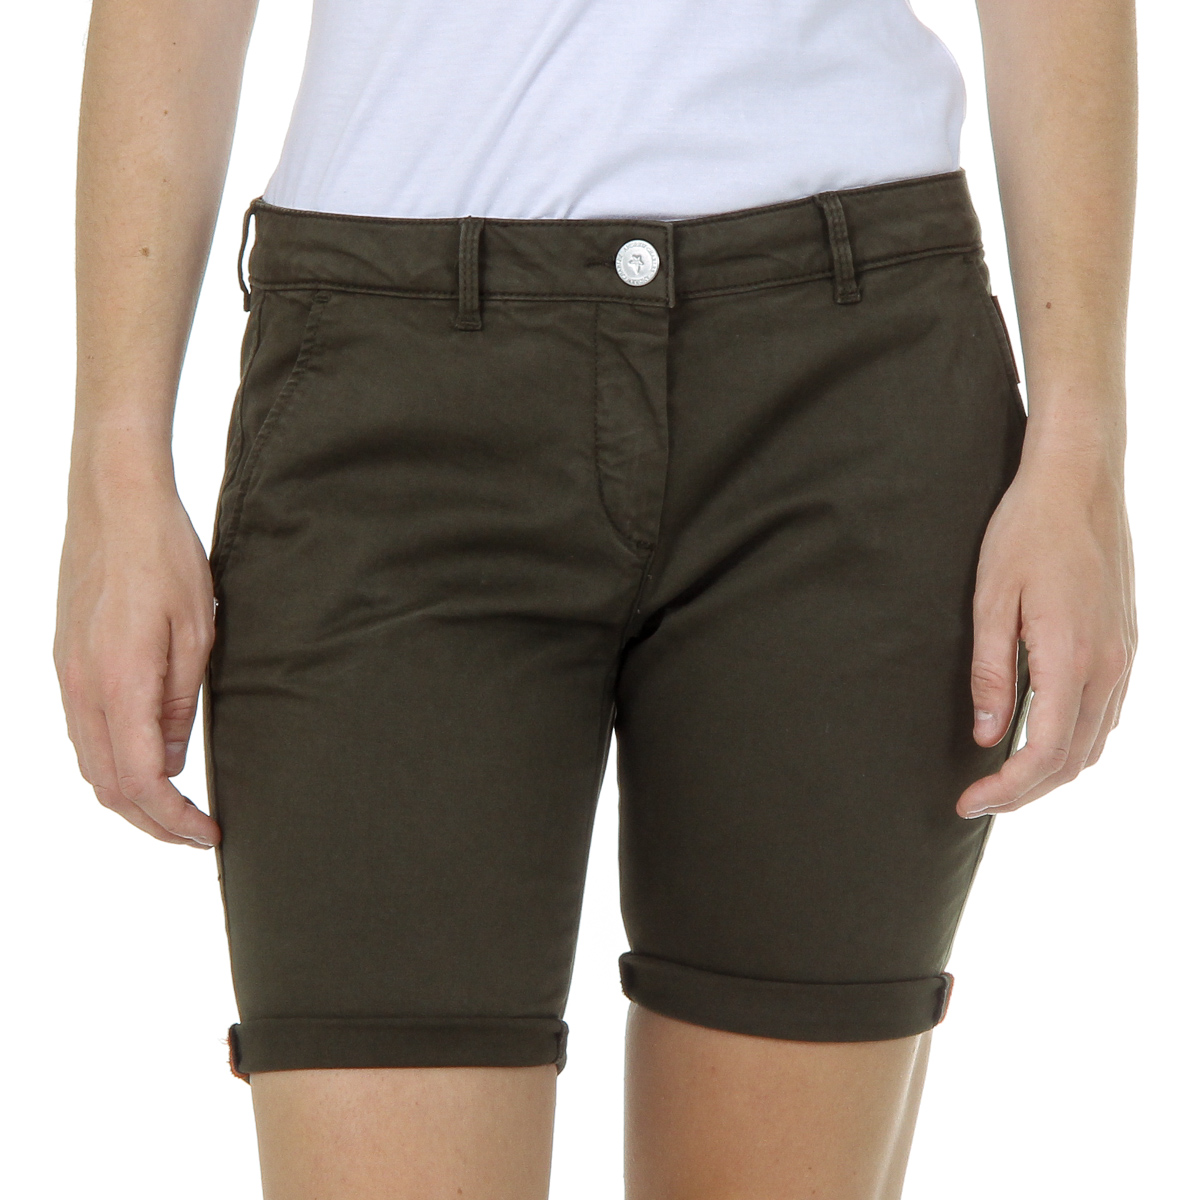 Primary image for Andrew Charles Womens Shorts Green SAFIA